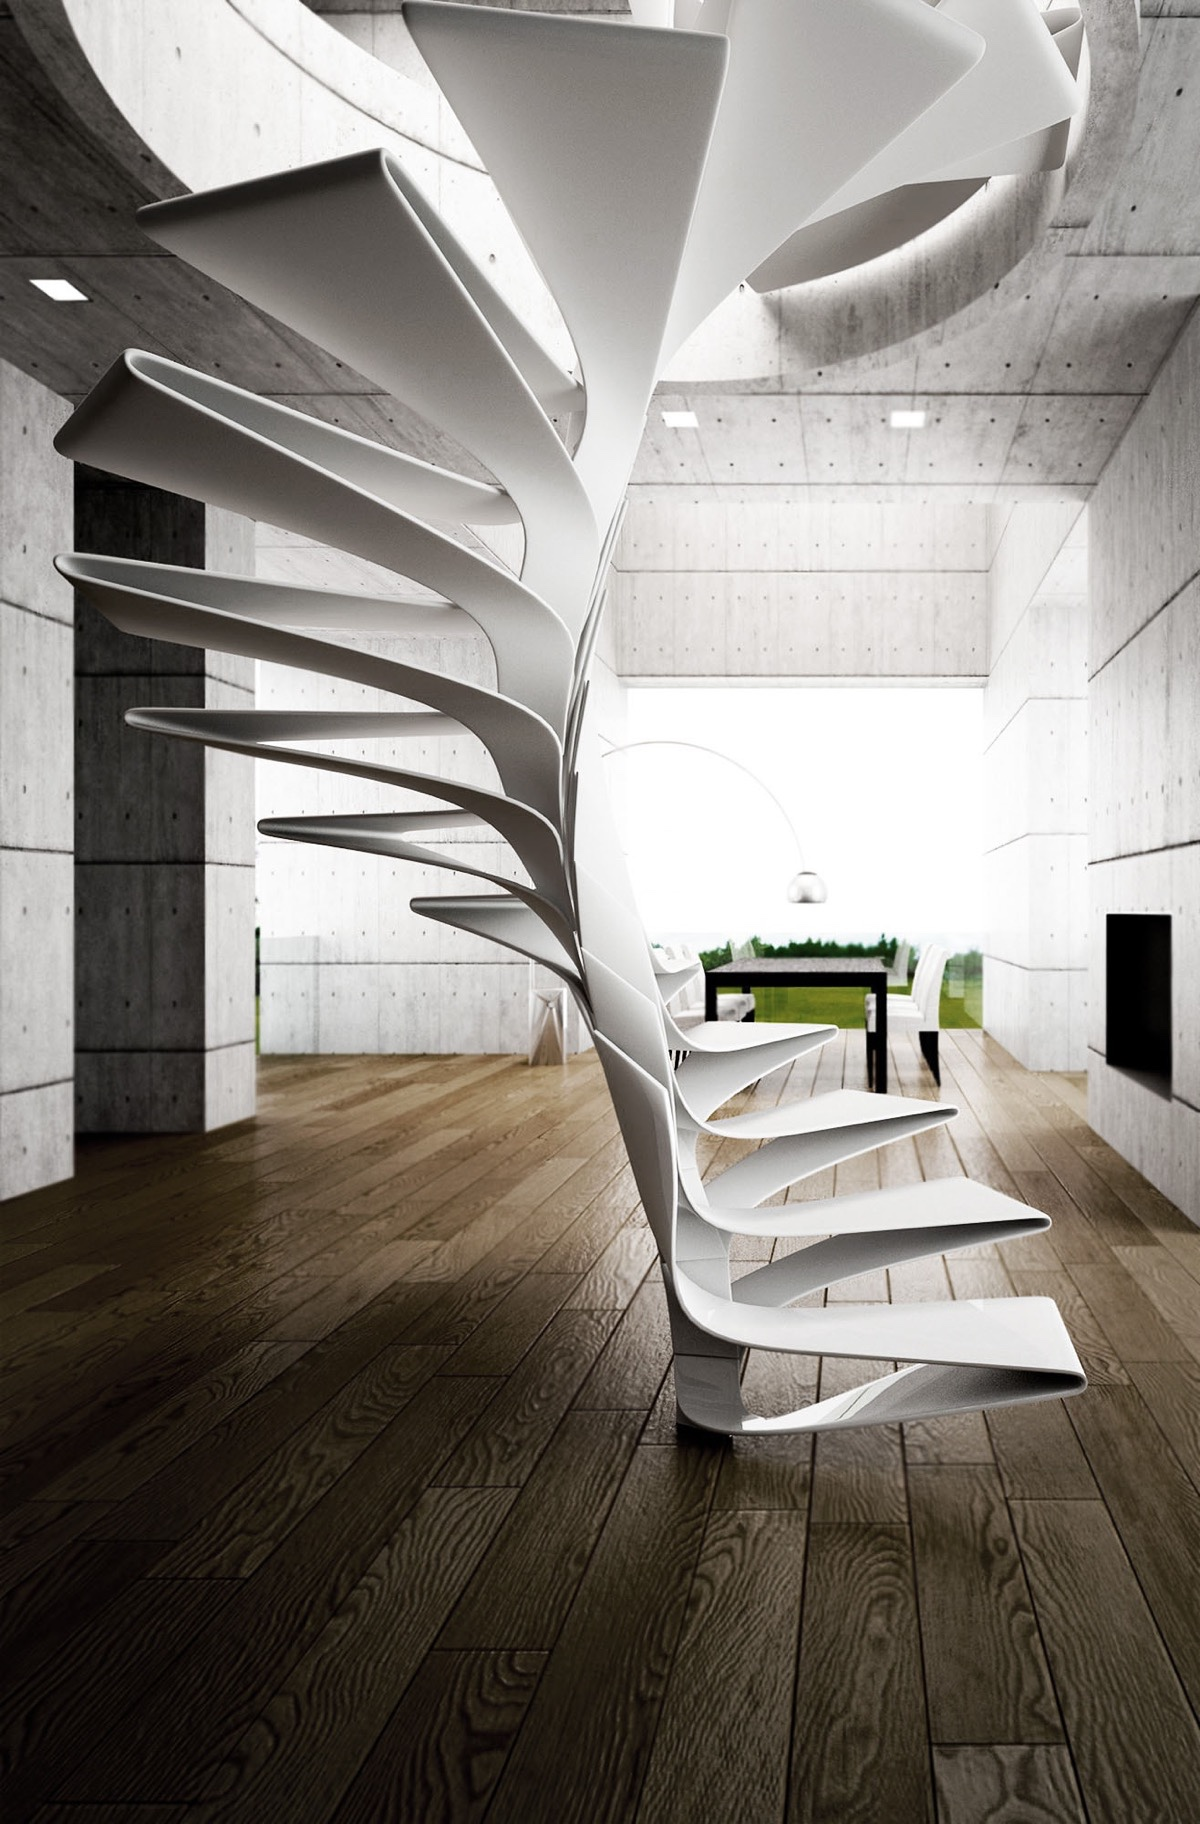 25 unique staircase designs to take center stage in your home - Modern interior design with spiral stairs contemporary spiral staircase design ...